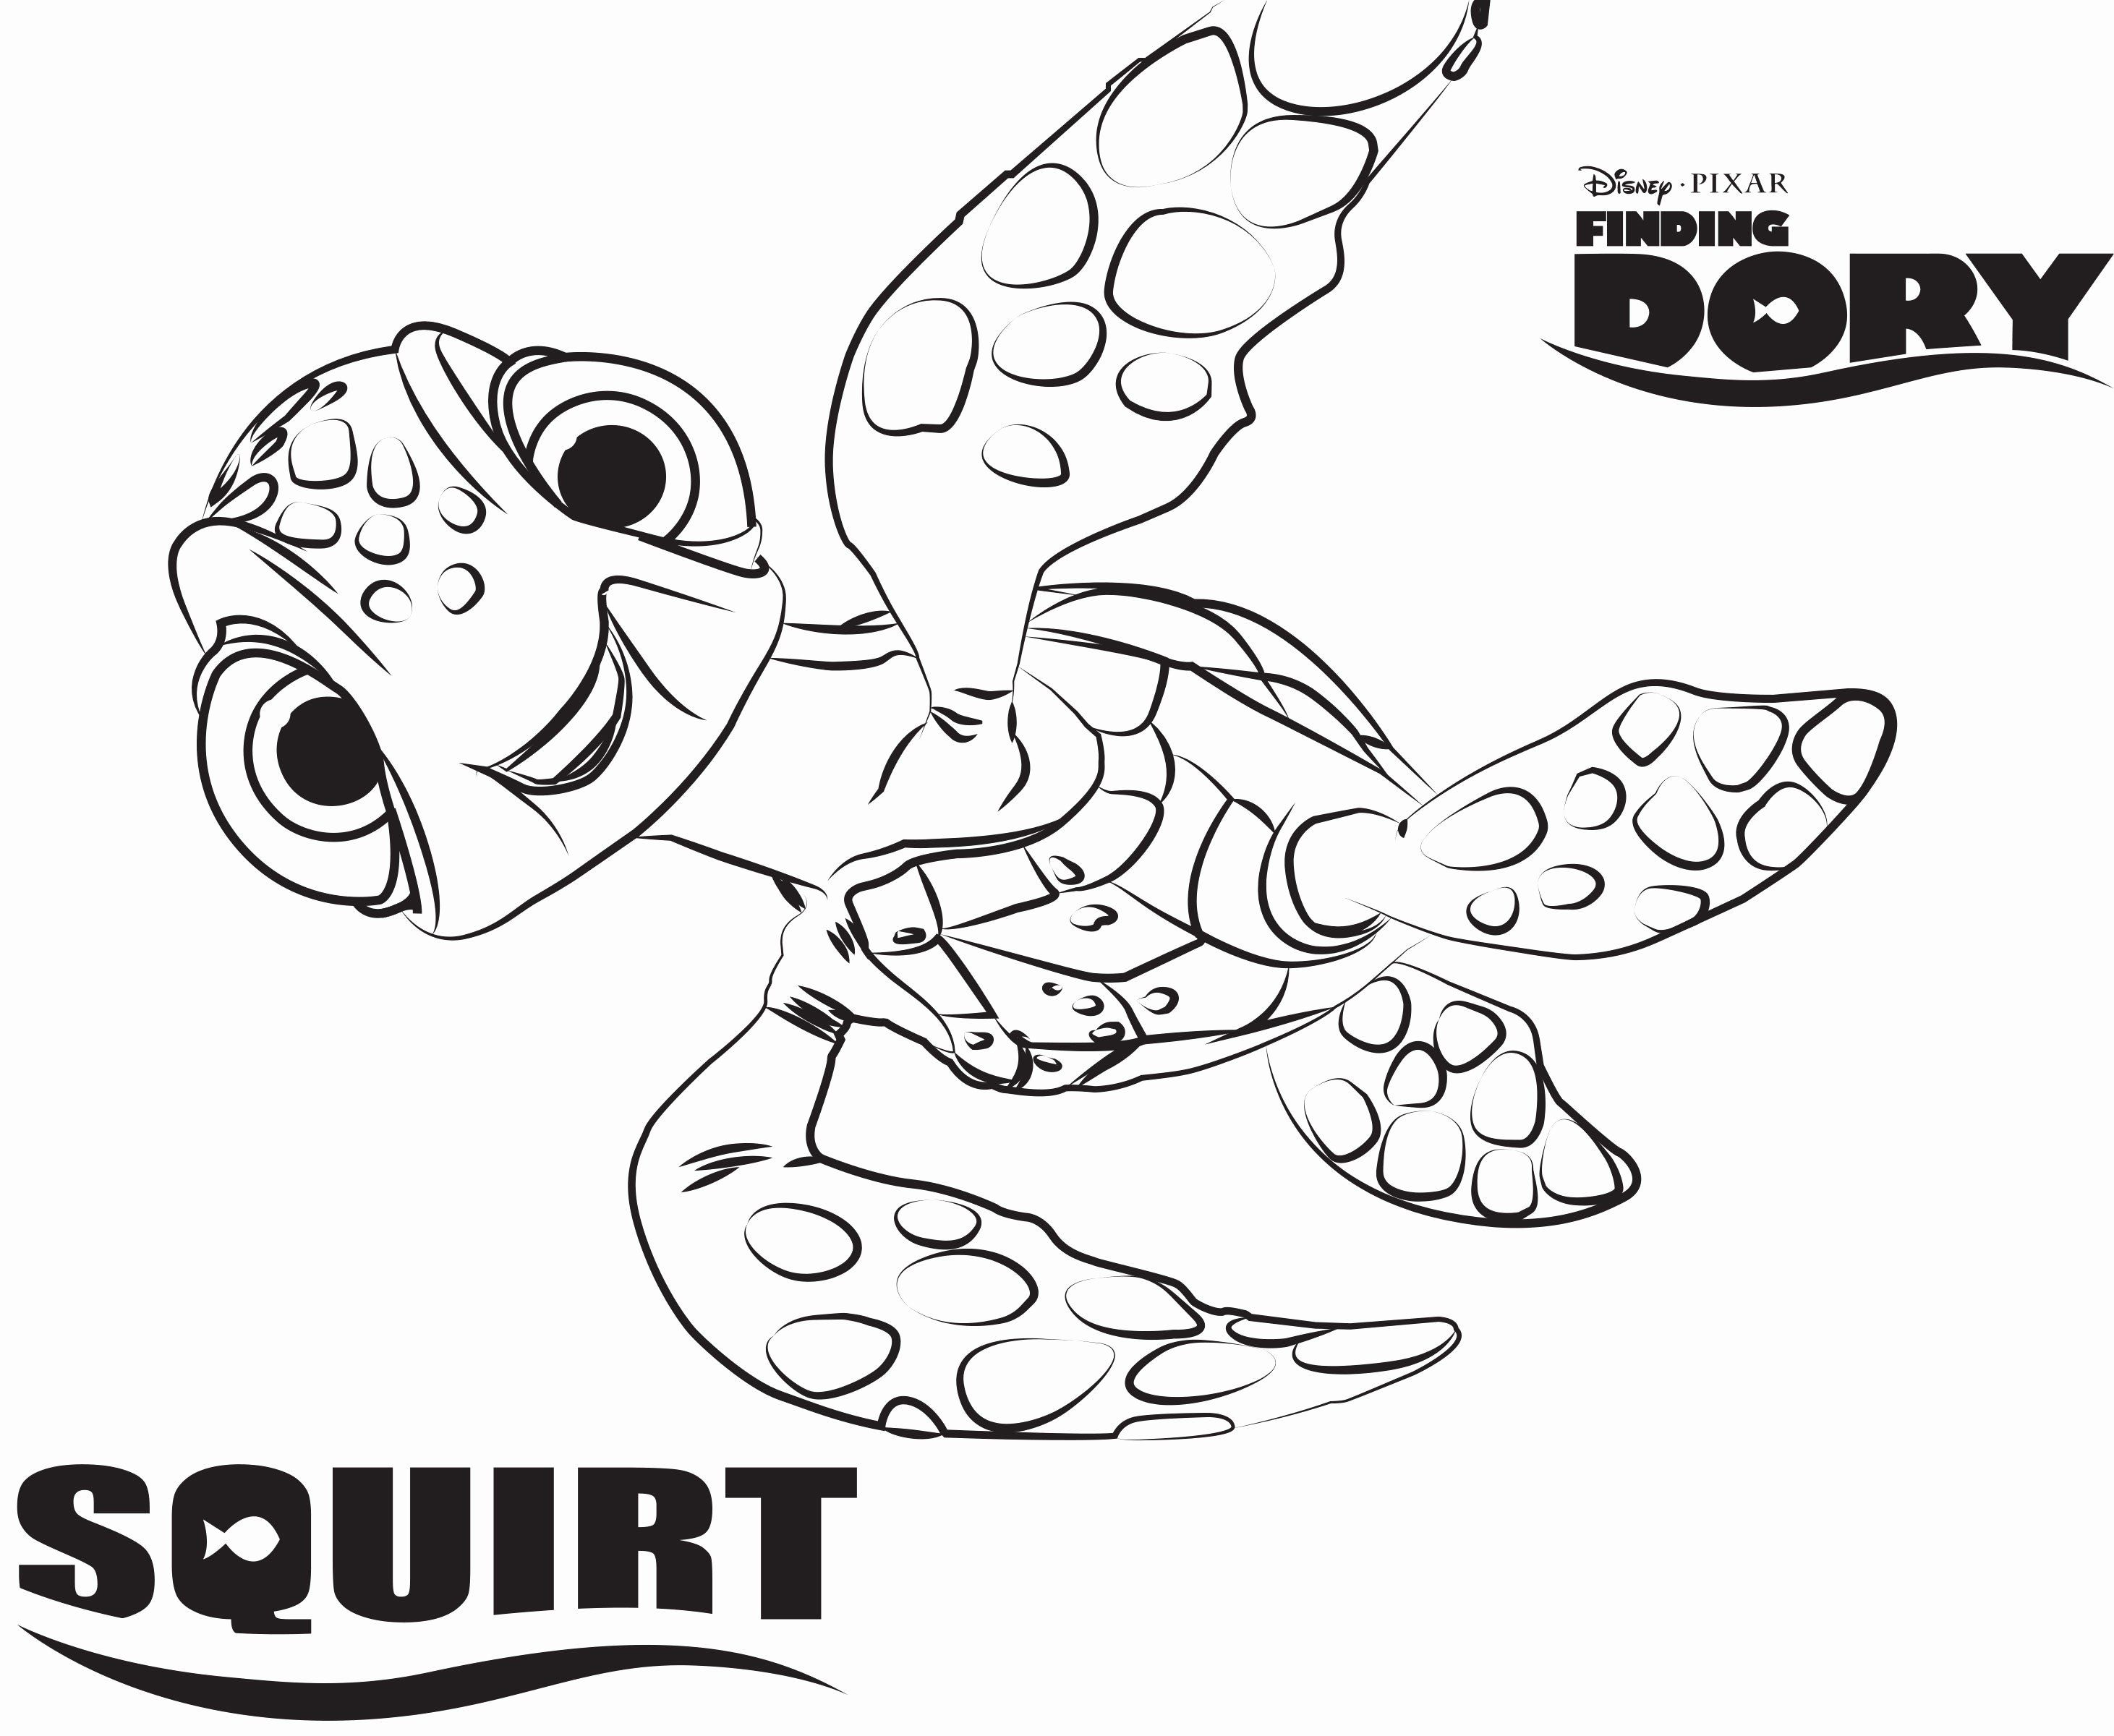 Coloring The Animal Best Of Finding Nemo Coloring Pages Best Lavishly Preschool In 2020 Nemo Coloring Pages Finding Nemo Coloring Pages Disney Coloring Pages